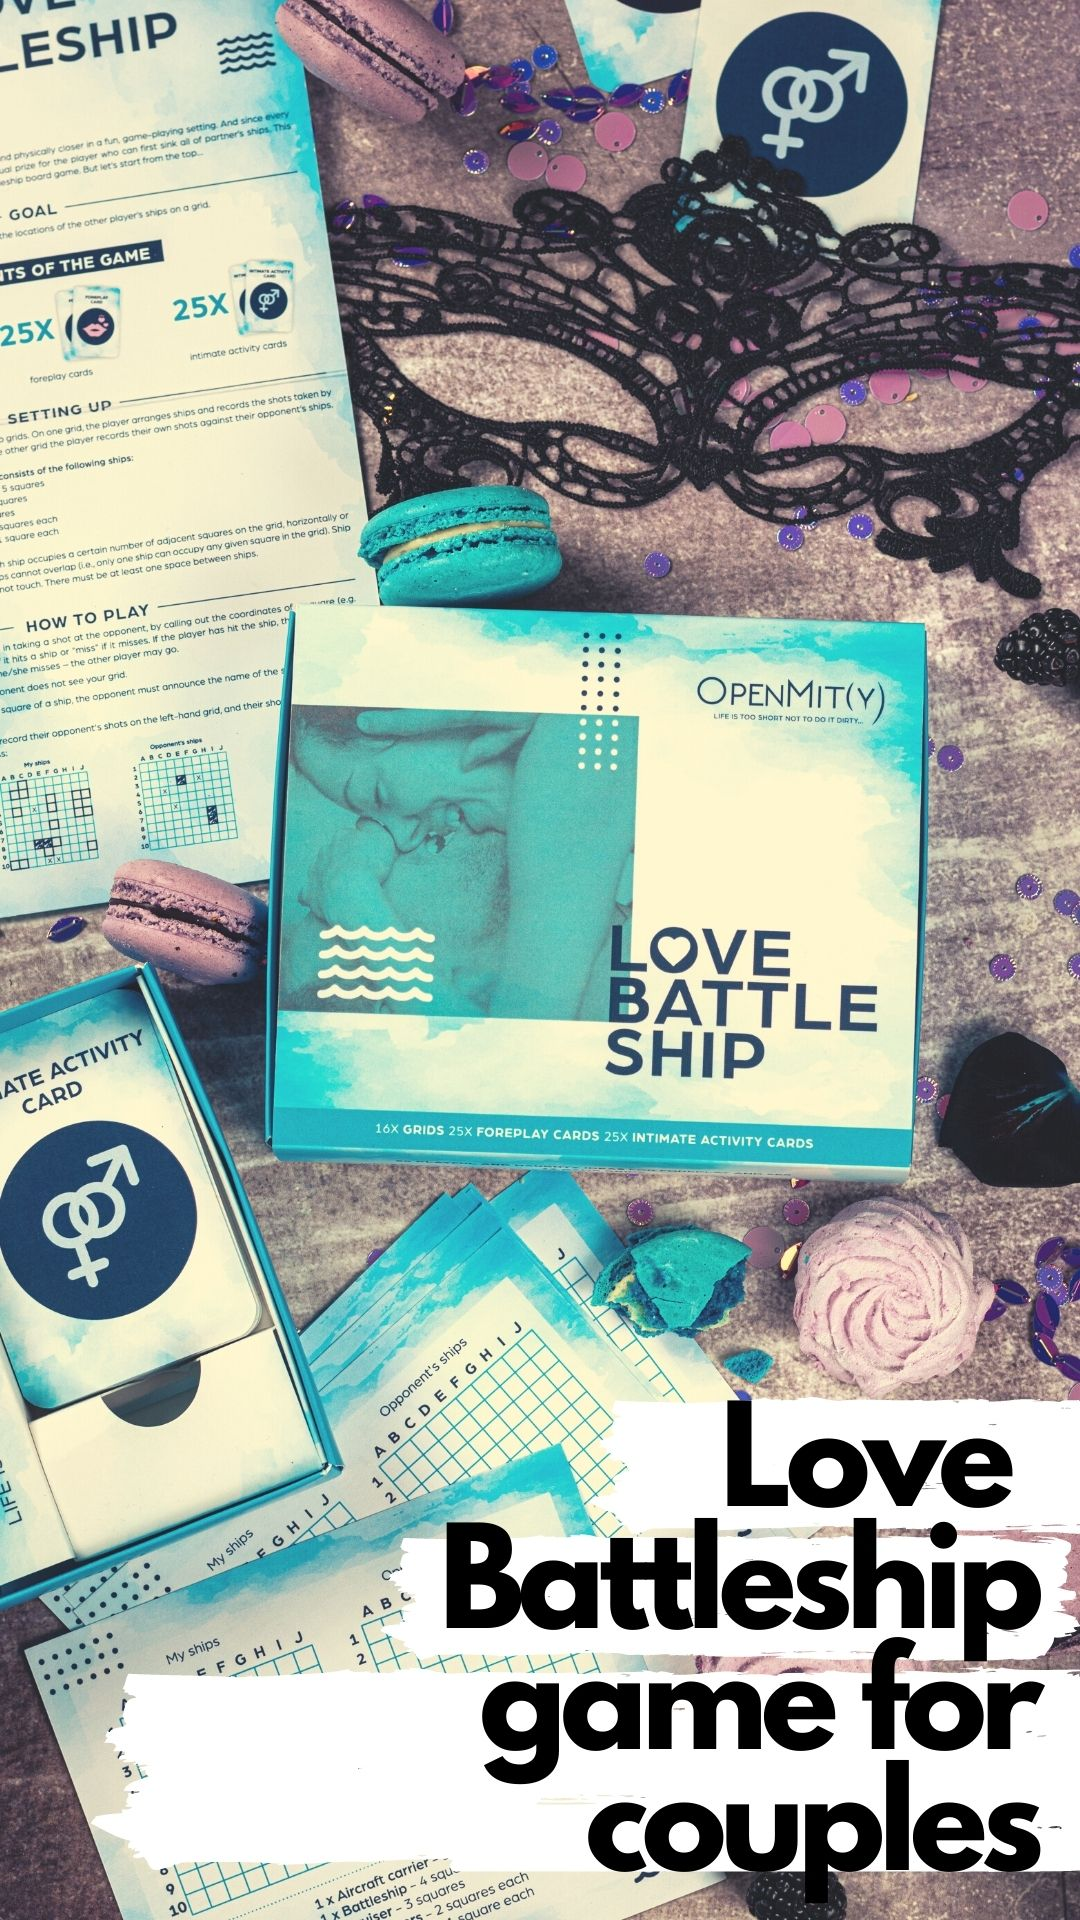 Love Battleship game for couples